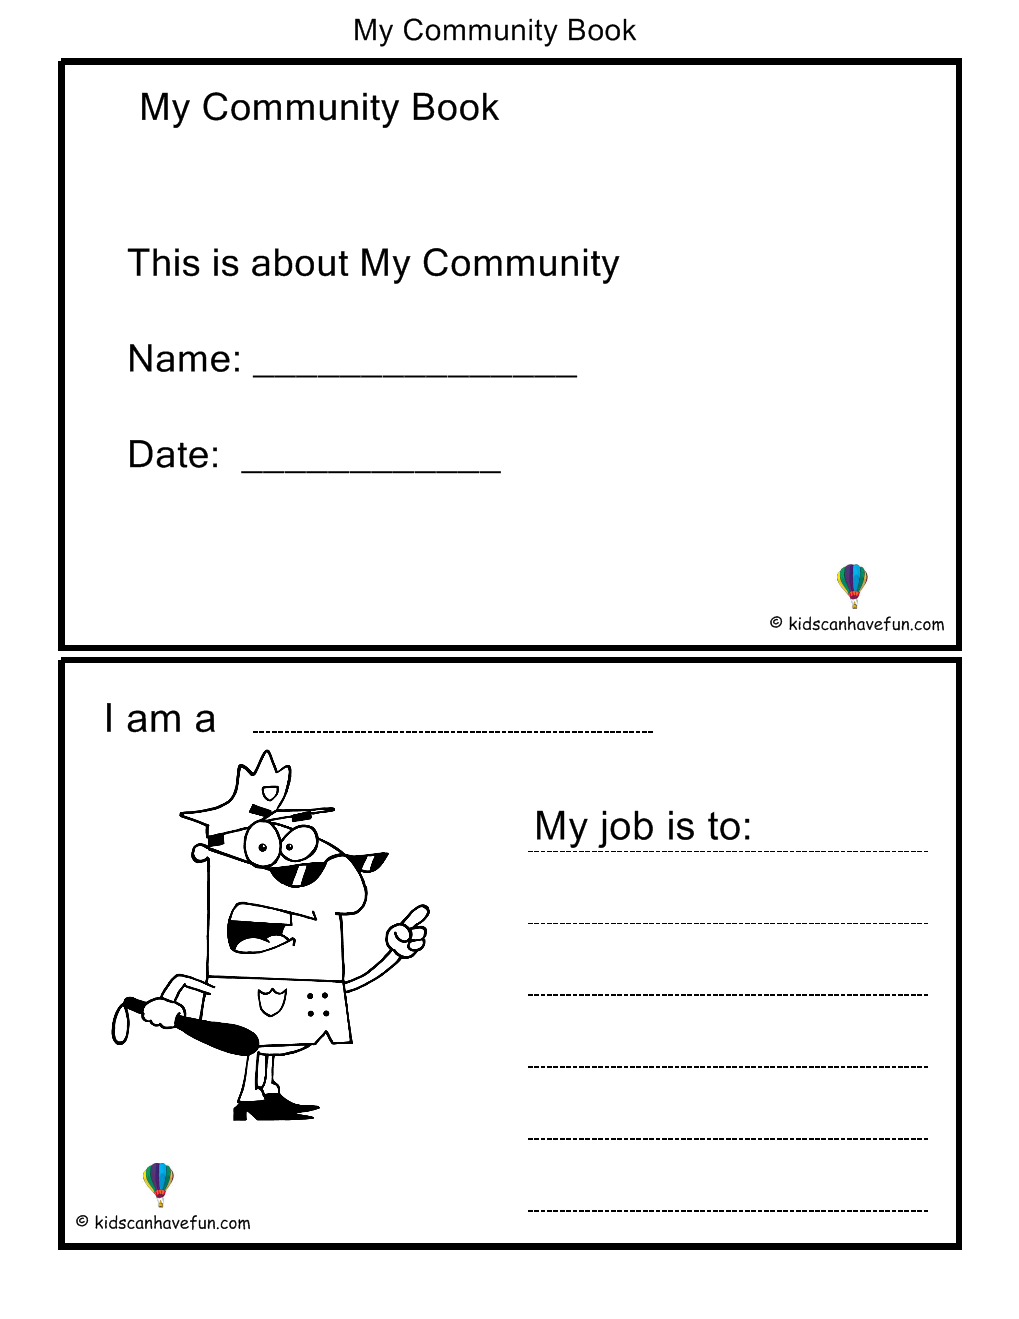 worksheet Health And Family Life Education Worksheets all about my community education social studies pinterest me printables and motivational activities for kids with journals health family tree m